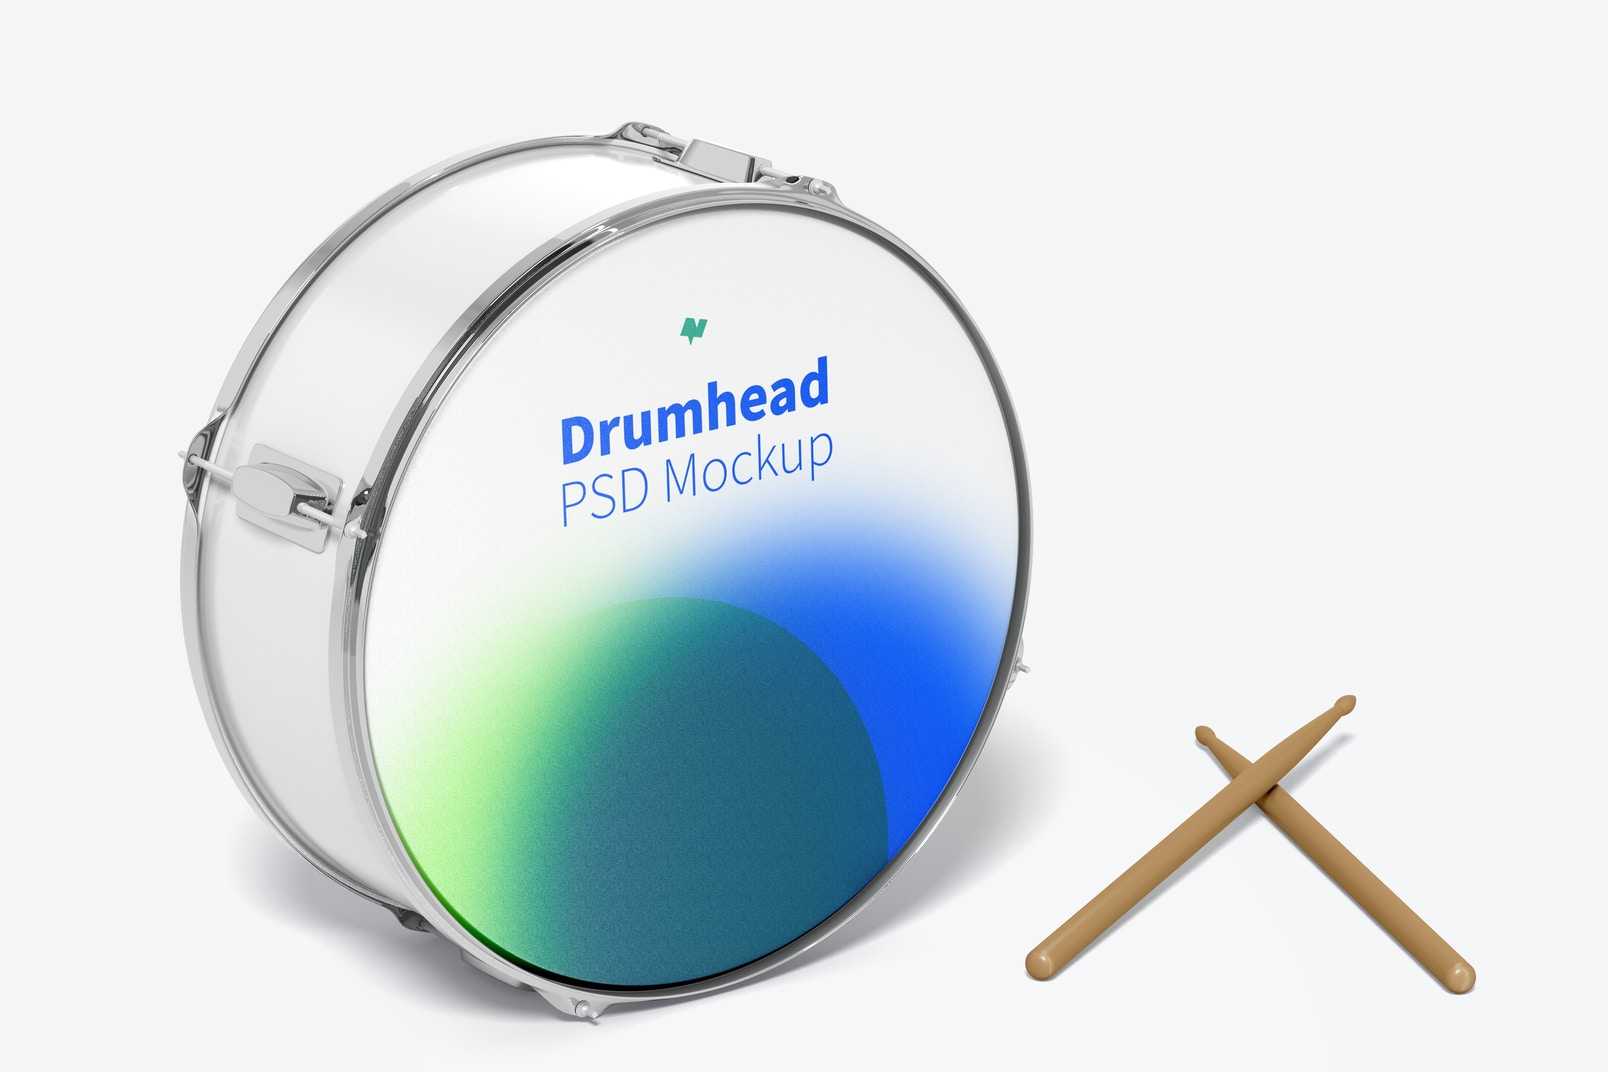 Drumhead Mockup, Front View